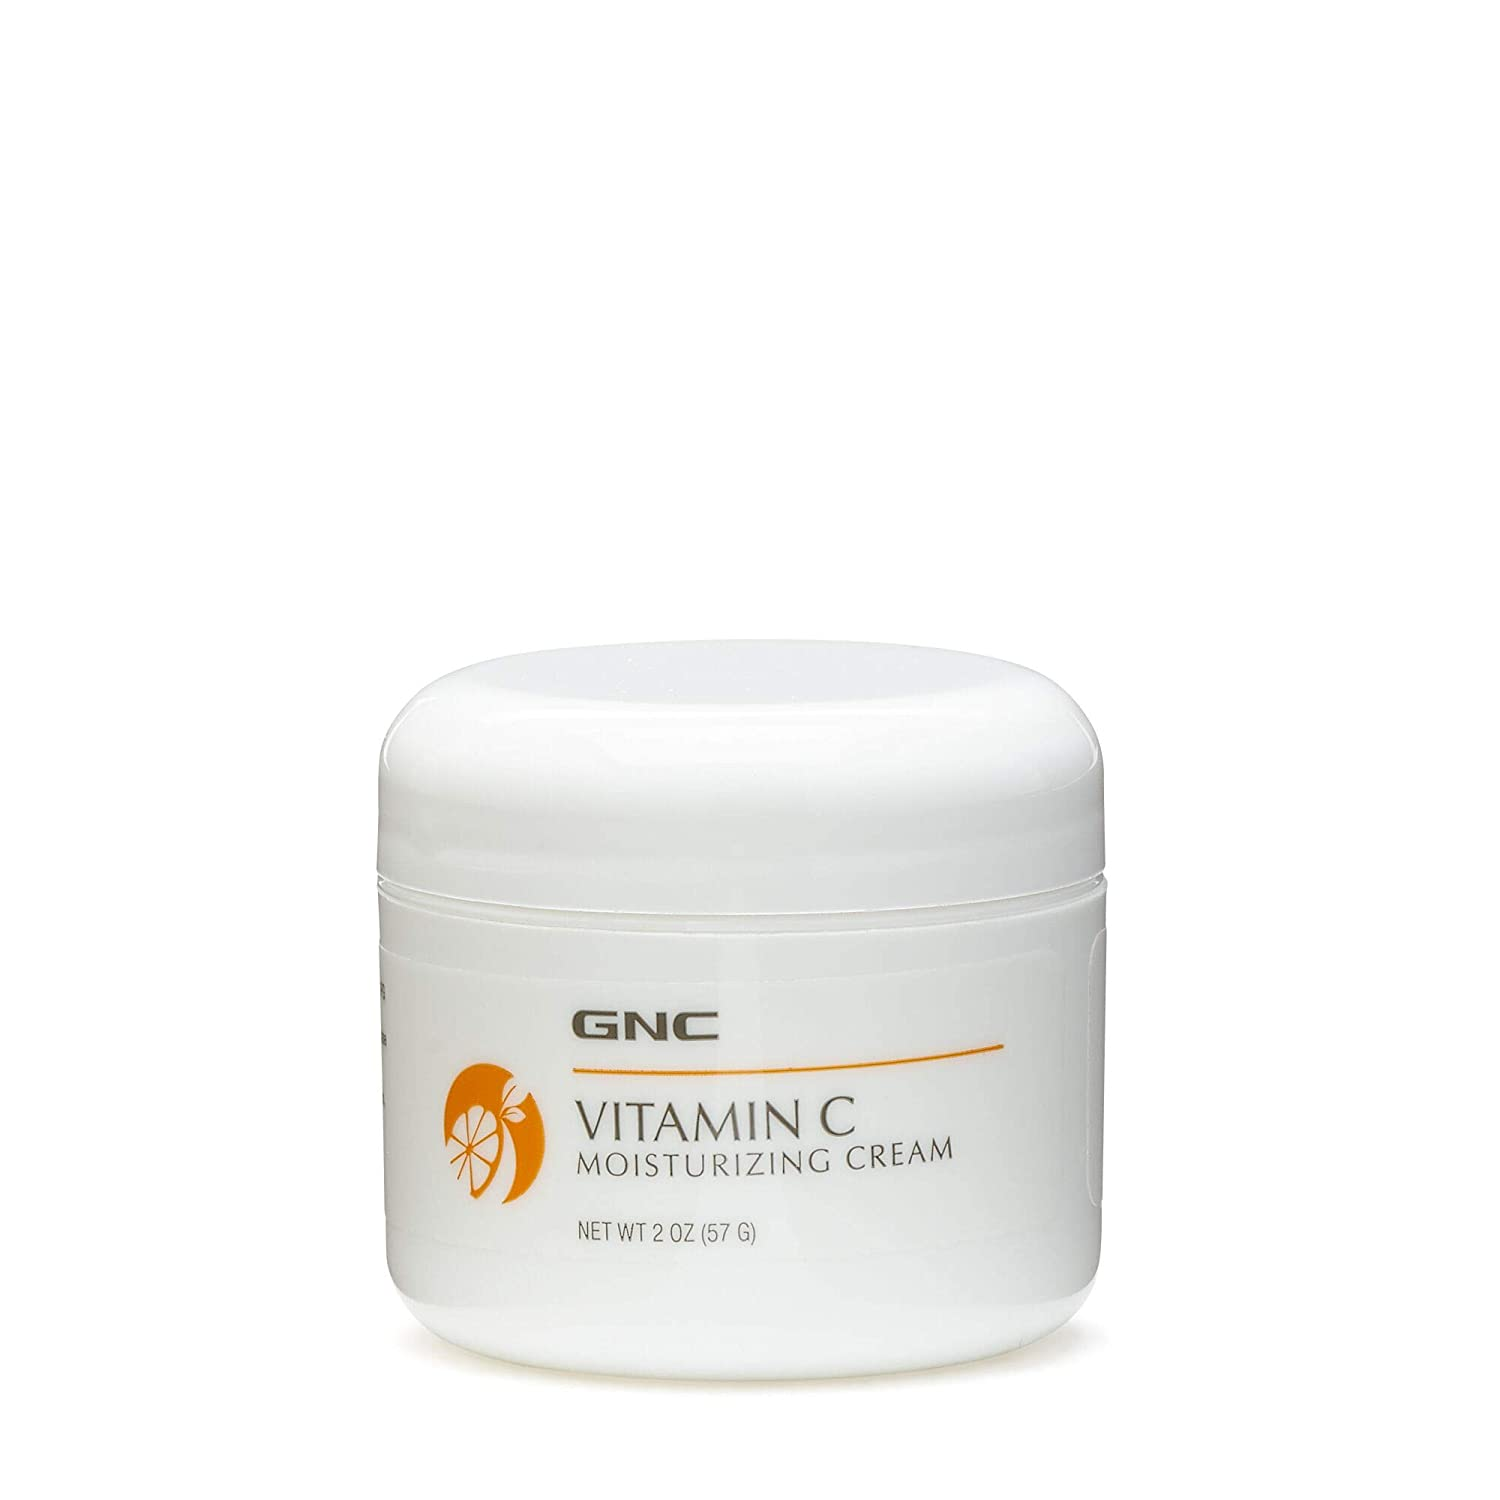 GNC Vitamin C Moisturizing Cream, 2 ozs